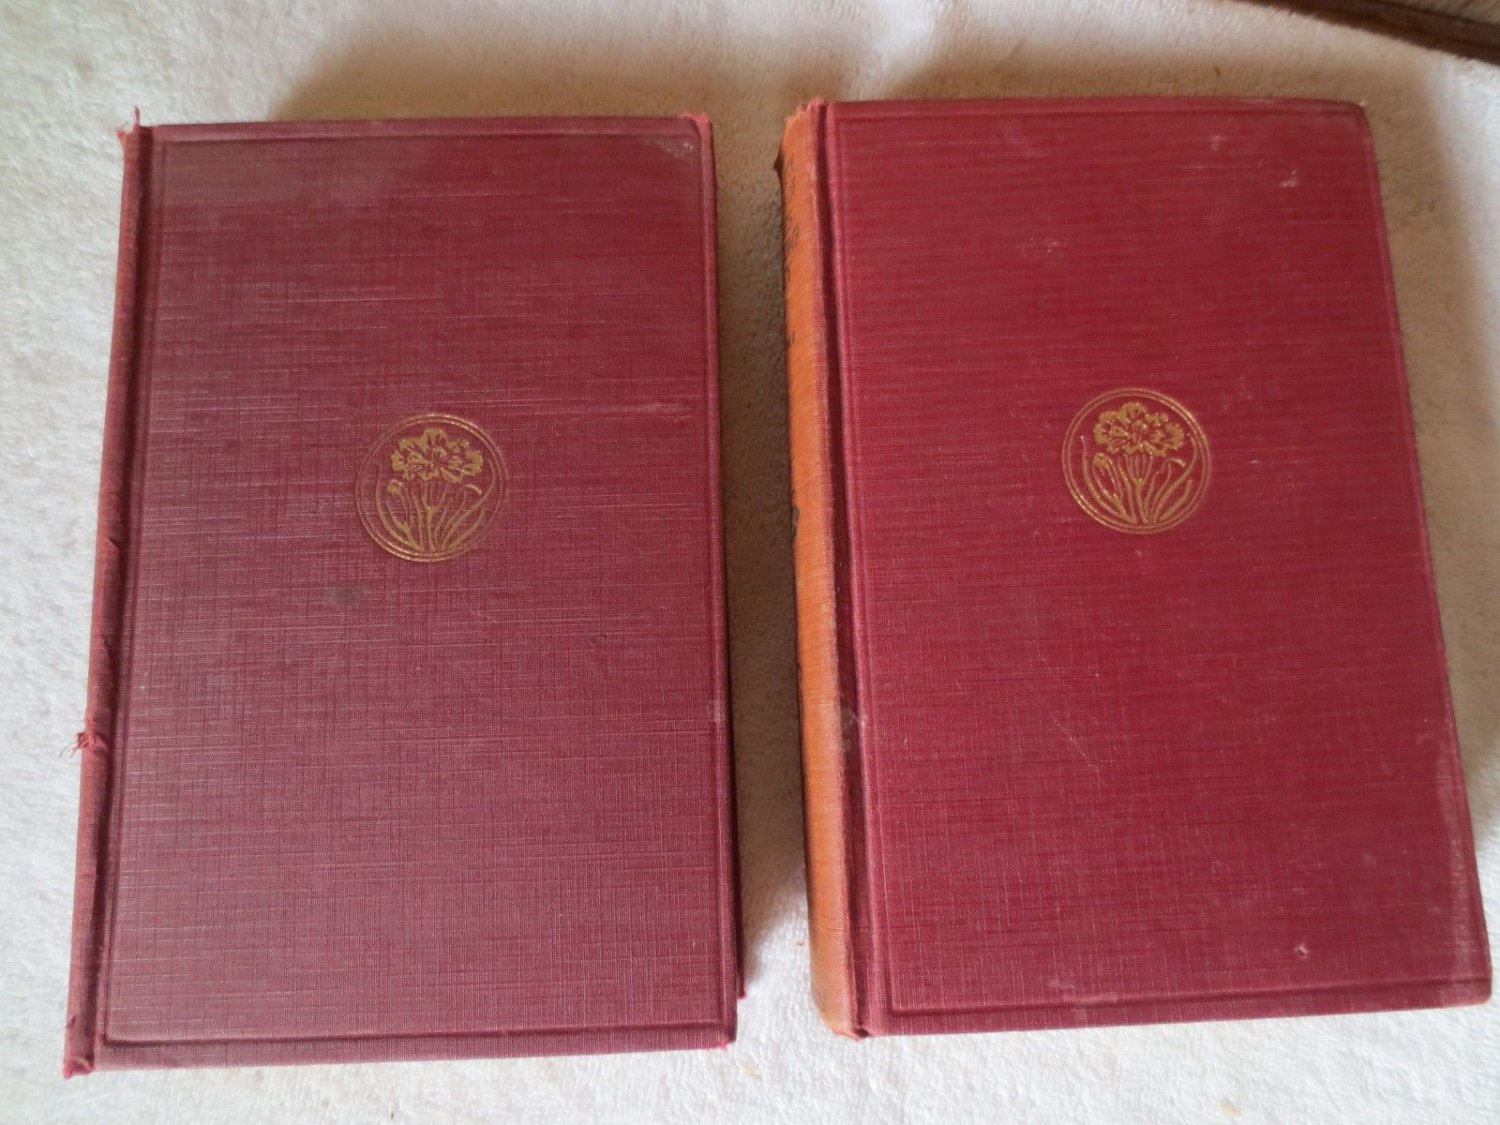 THE COMPLETE WORKS JAMES WHITCOMB RILEY VOLUMES IX X